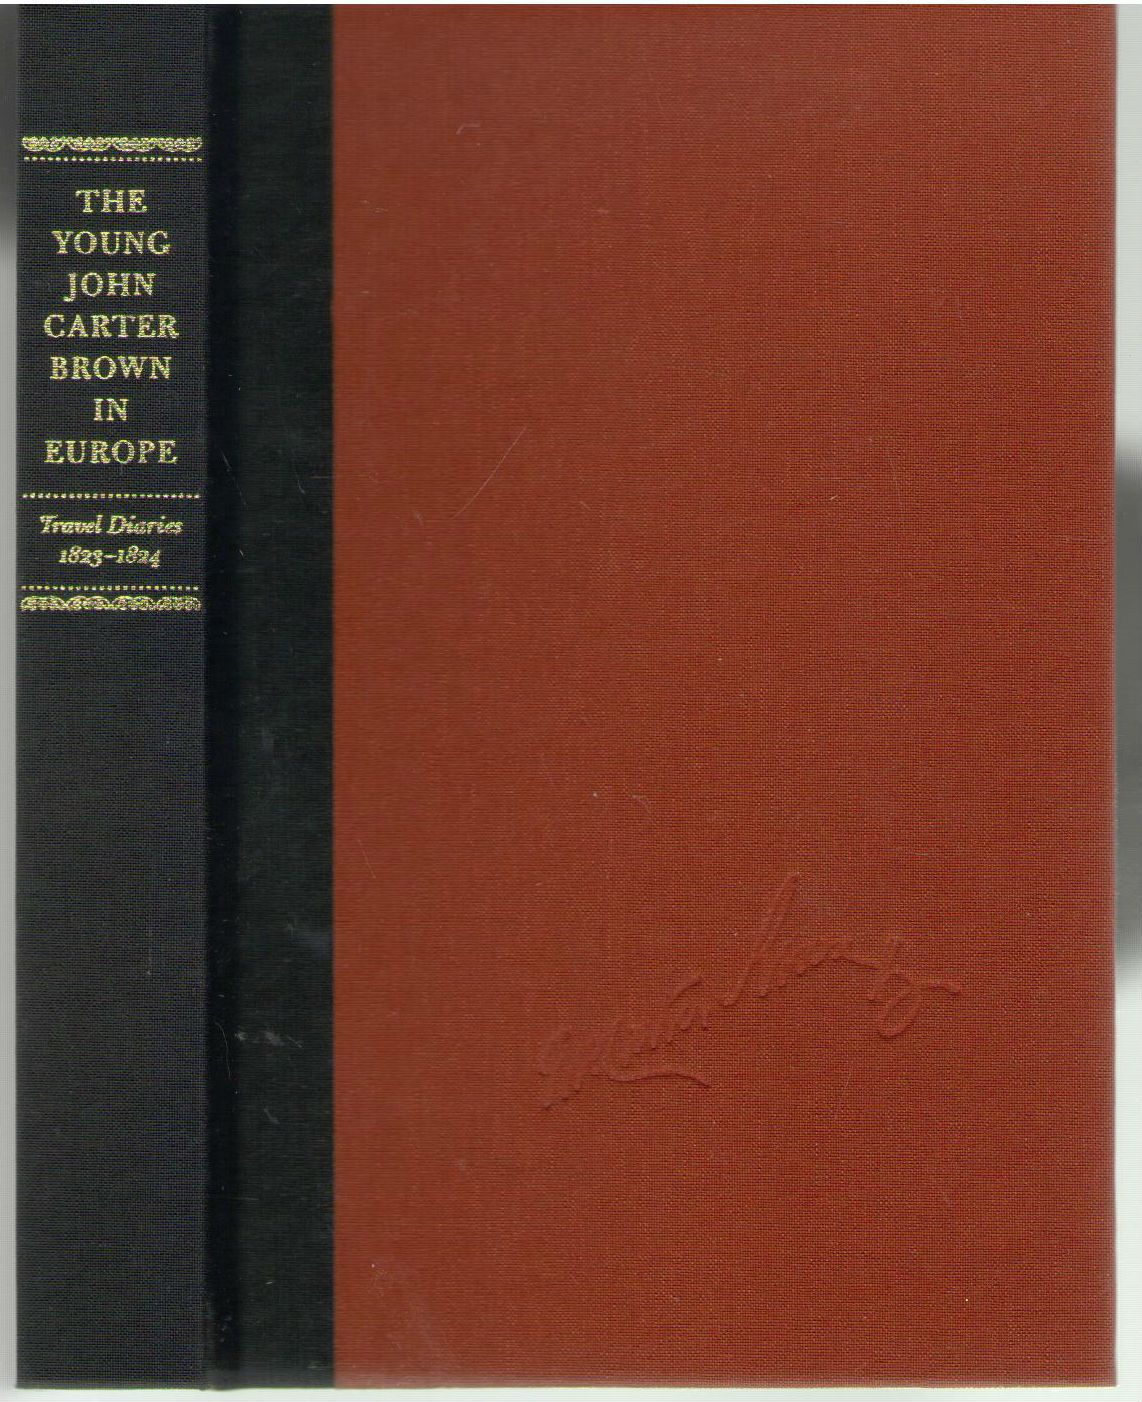 The Young John Carter Brown in Europe: Travel Diaries, 1823-1824